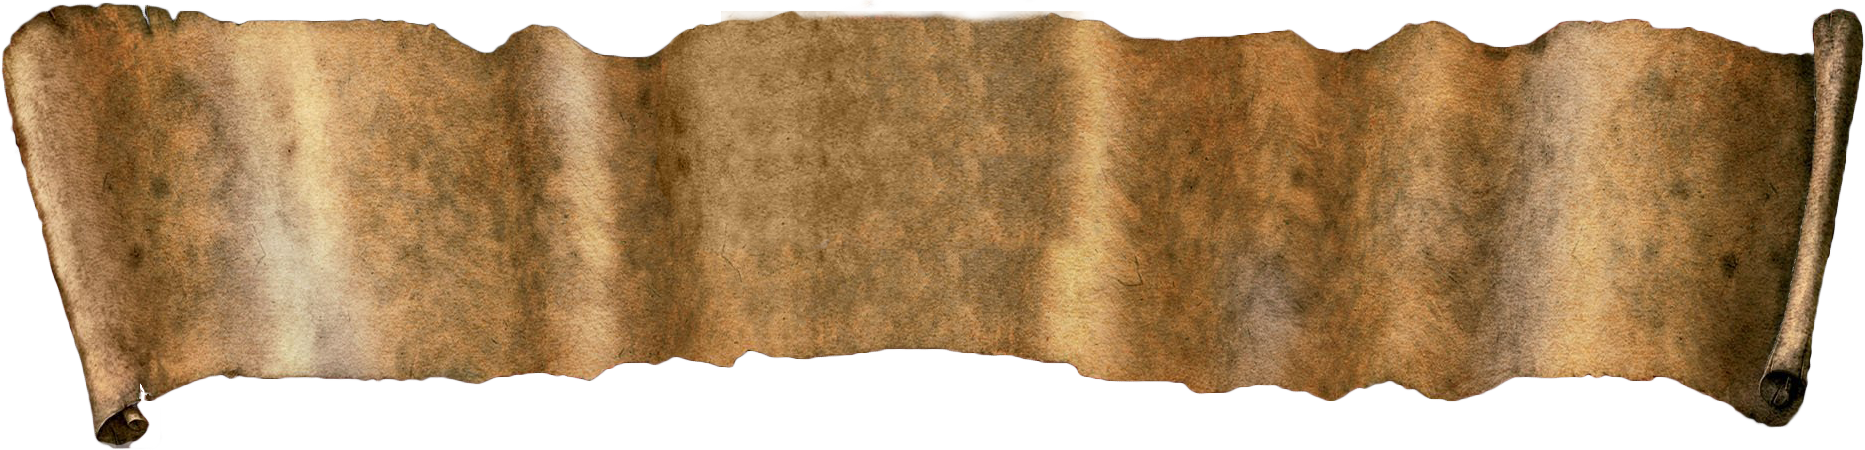 Pirate scroll png. Image hdpotcscroll pirates online